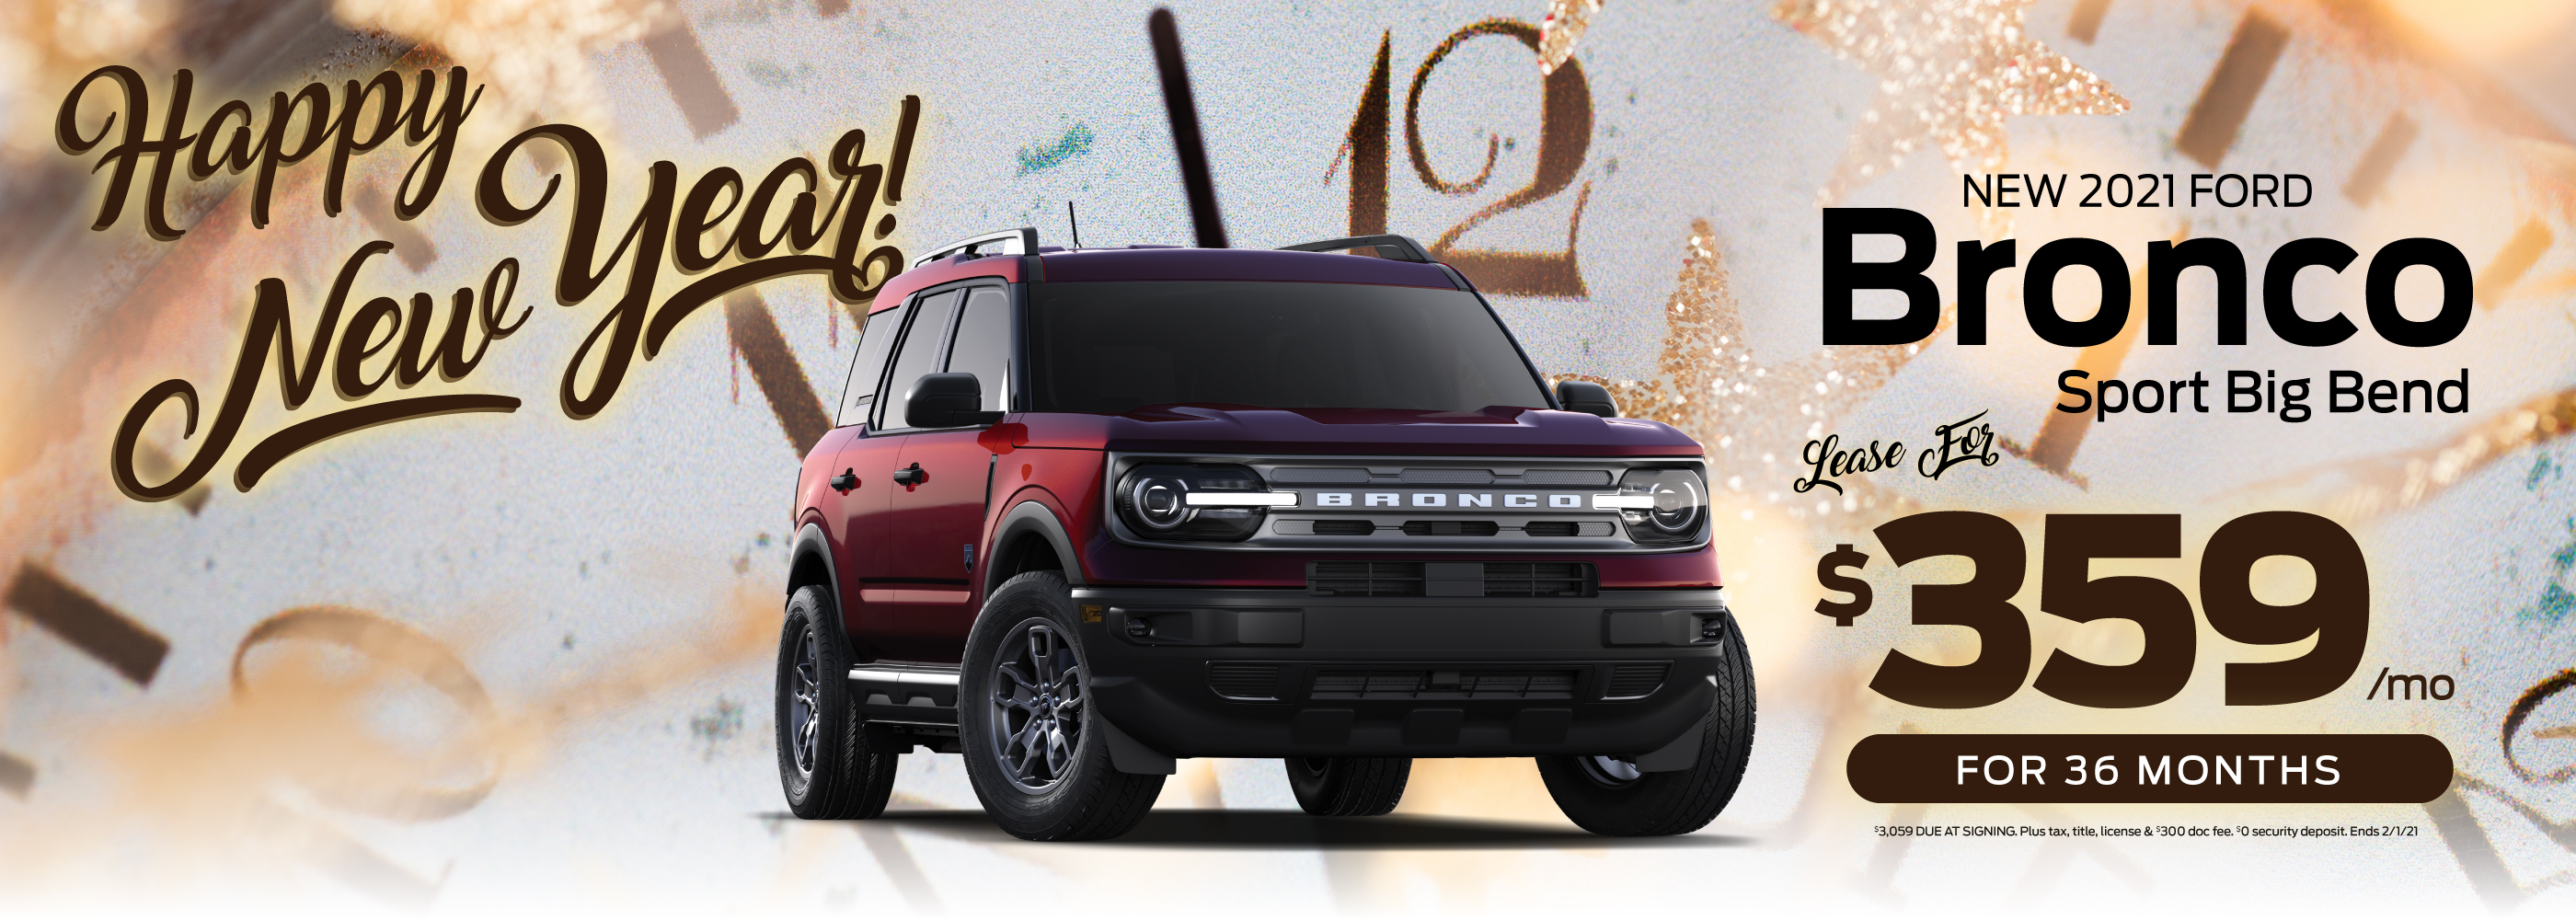 Hfsc122920banner Lease 2800x1000 Bronco